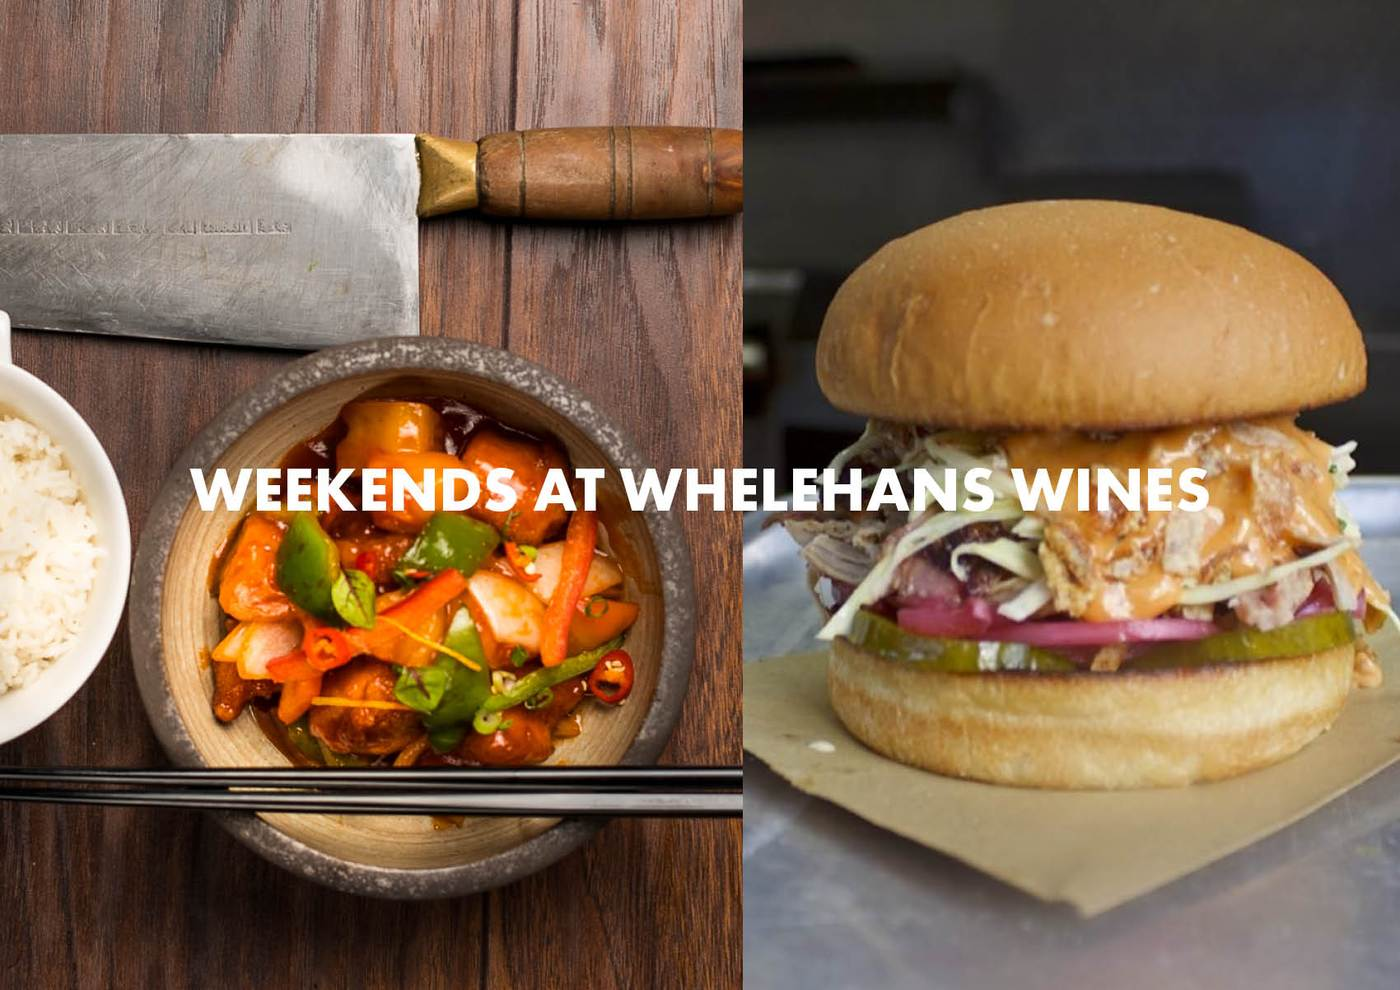 This Weekend at Whelehans Wines